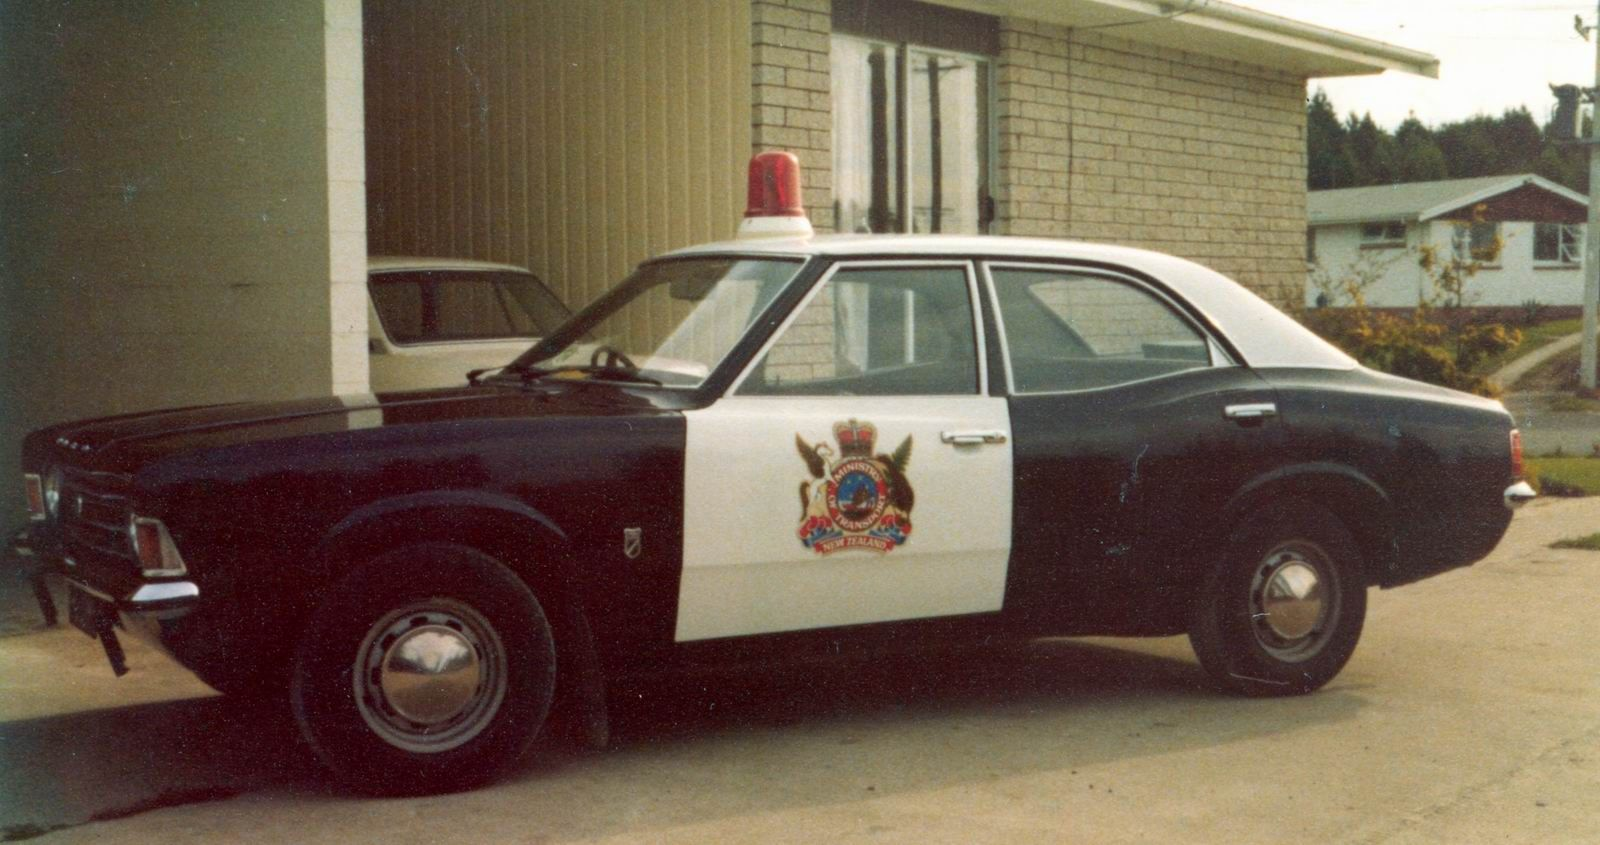 Http Www 111emergency Co Nz Police Vintage Fordcortina Jpg